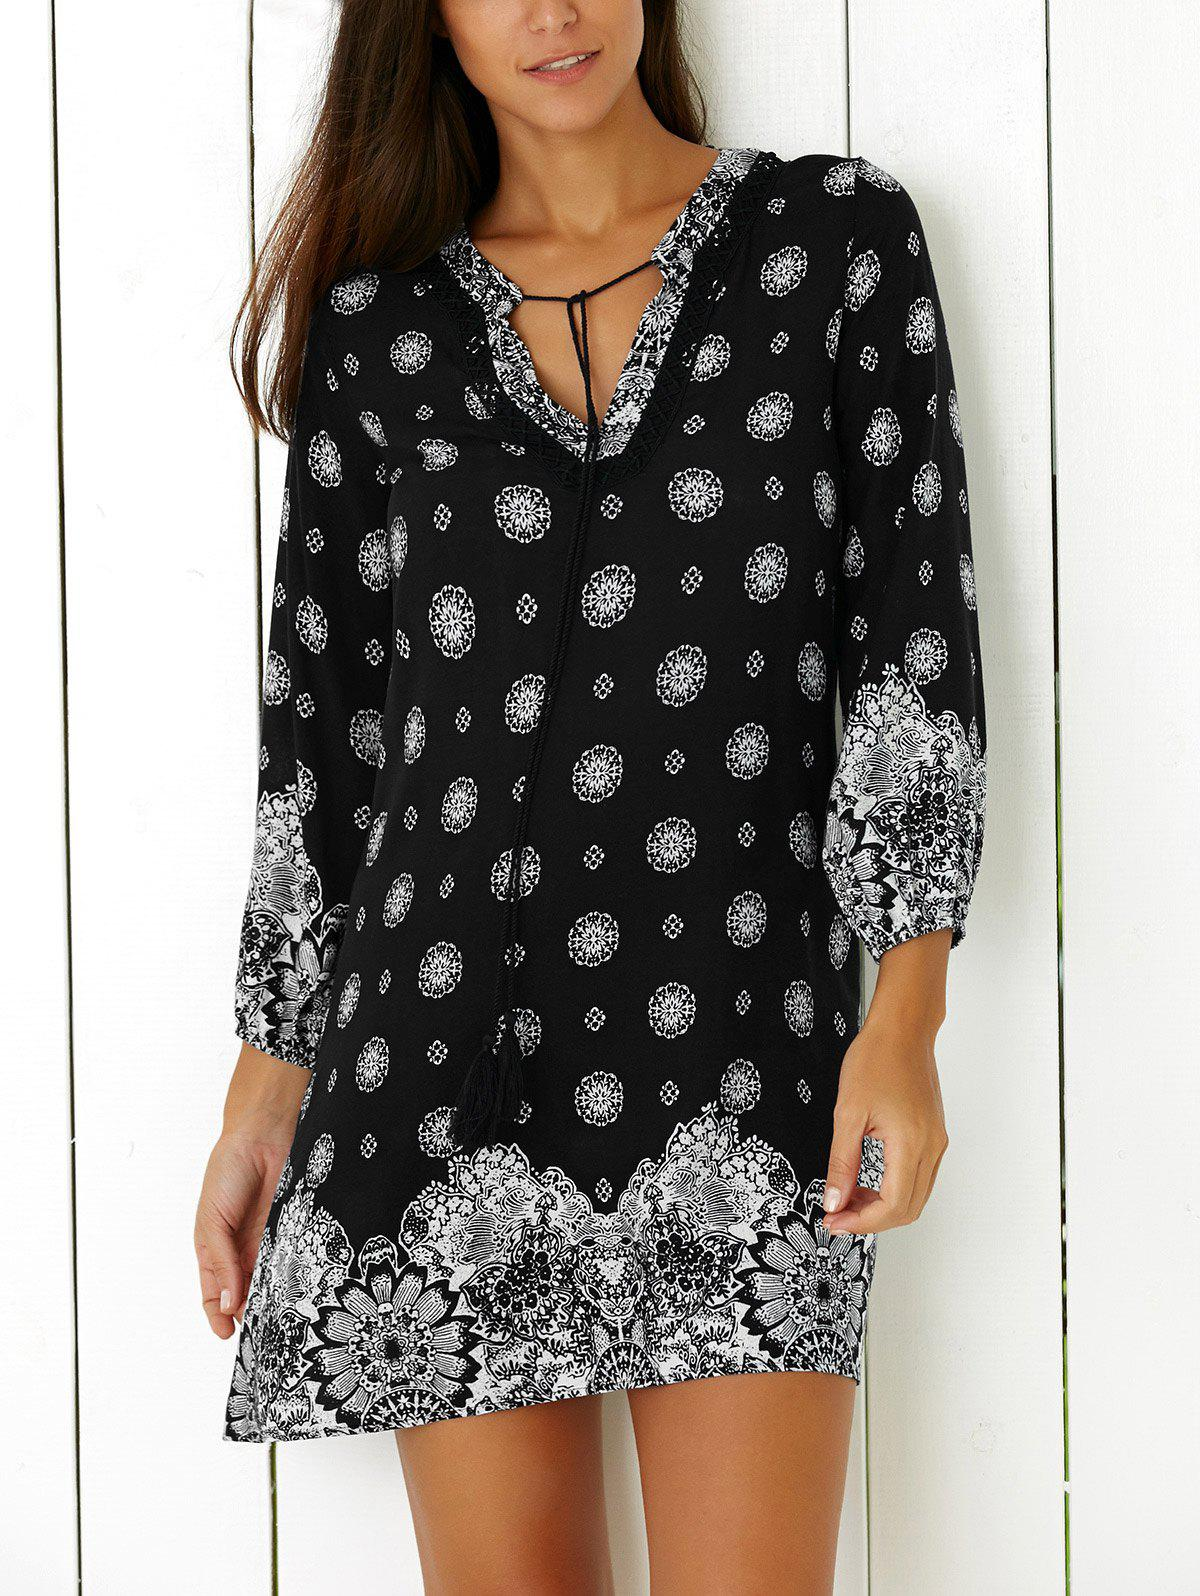 Tribal Print Casual Going Out Shift DressWOMEN<br><br>Size: XL; Color: BLACK; Style: Vintage; Material: Polyester; Silhouette: Straight; Dresses Length: Mini; Neckline: V-Neck; Sleeve Length: 3/4 Length Sleeves; Pattern Type: Print; With Belt: No; Season: Fall,Spring; Weight: 0.2200kg; Package Contents: 1 x Dress;